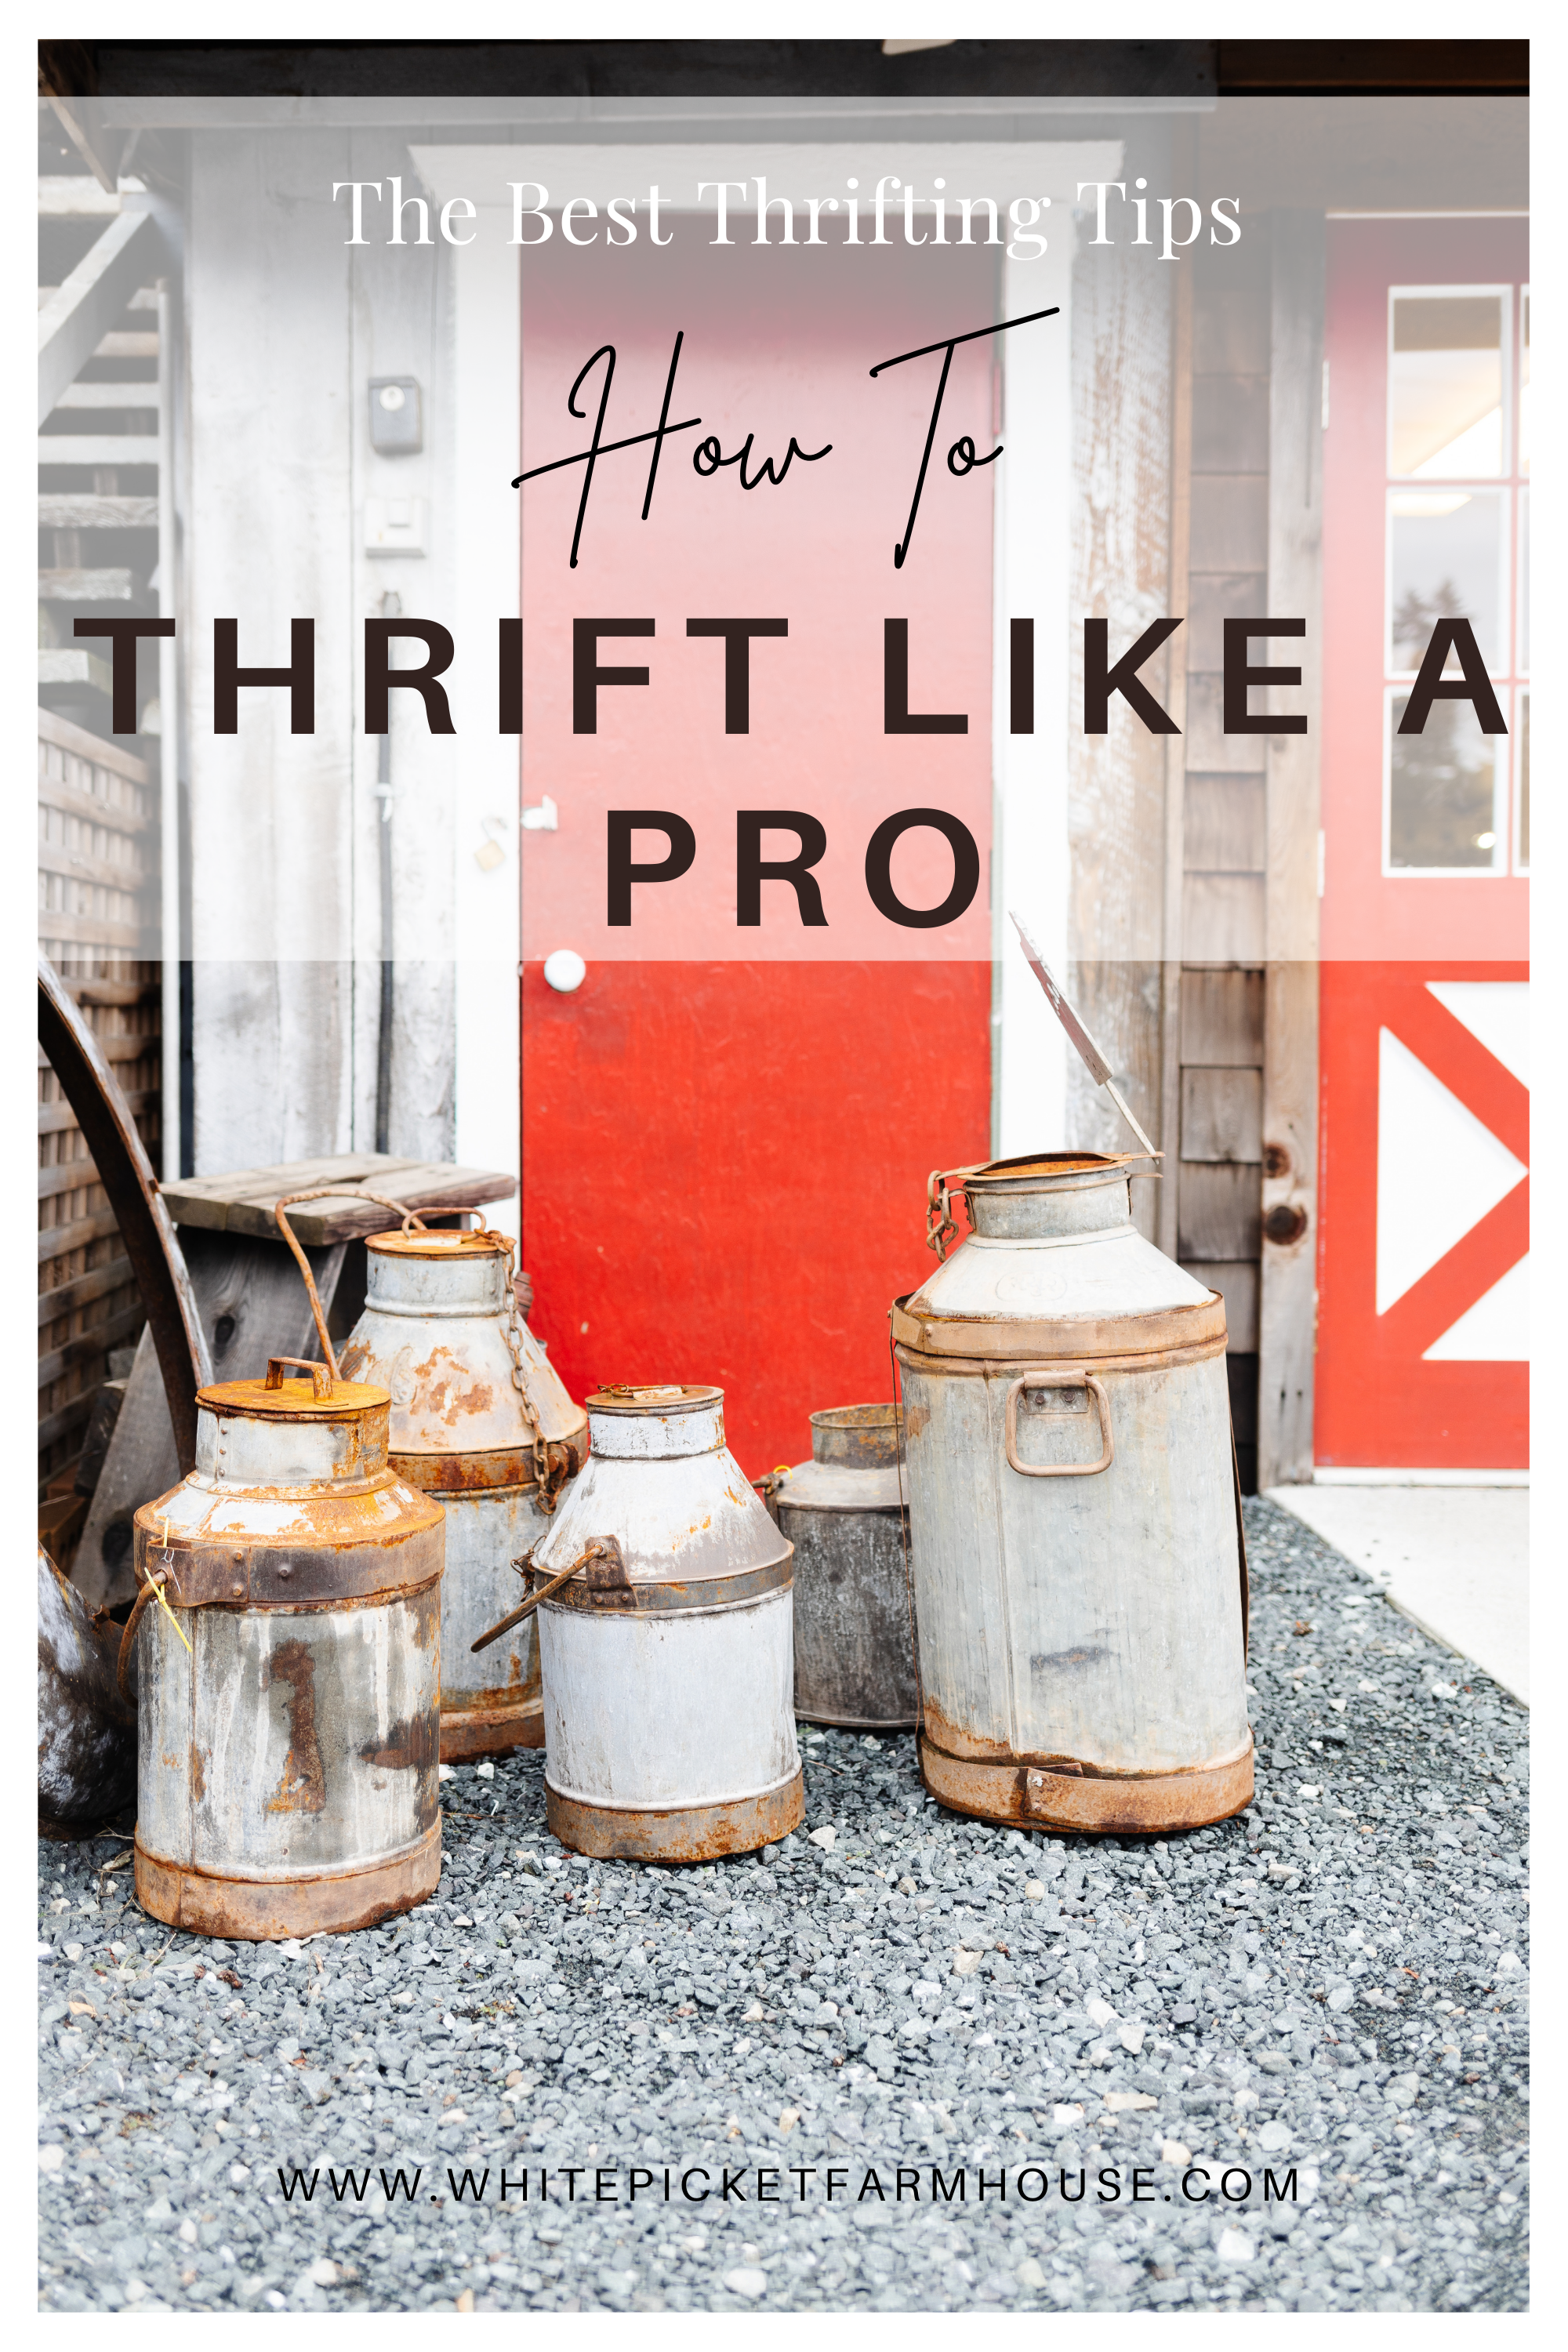 How To Thrift Like A Pro. My Tips and tricks to find the best decor thrifting and what to keep in mind when you're shopping for your home